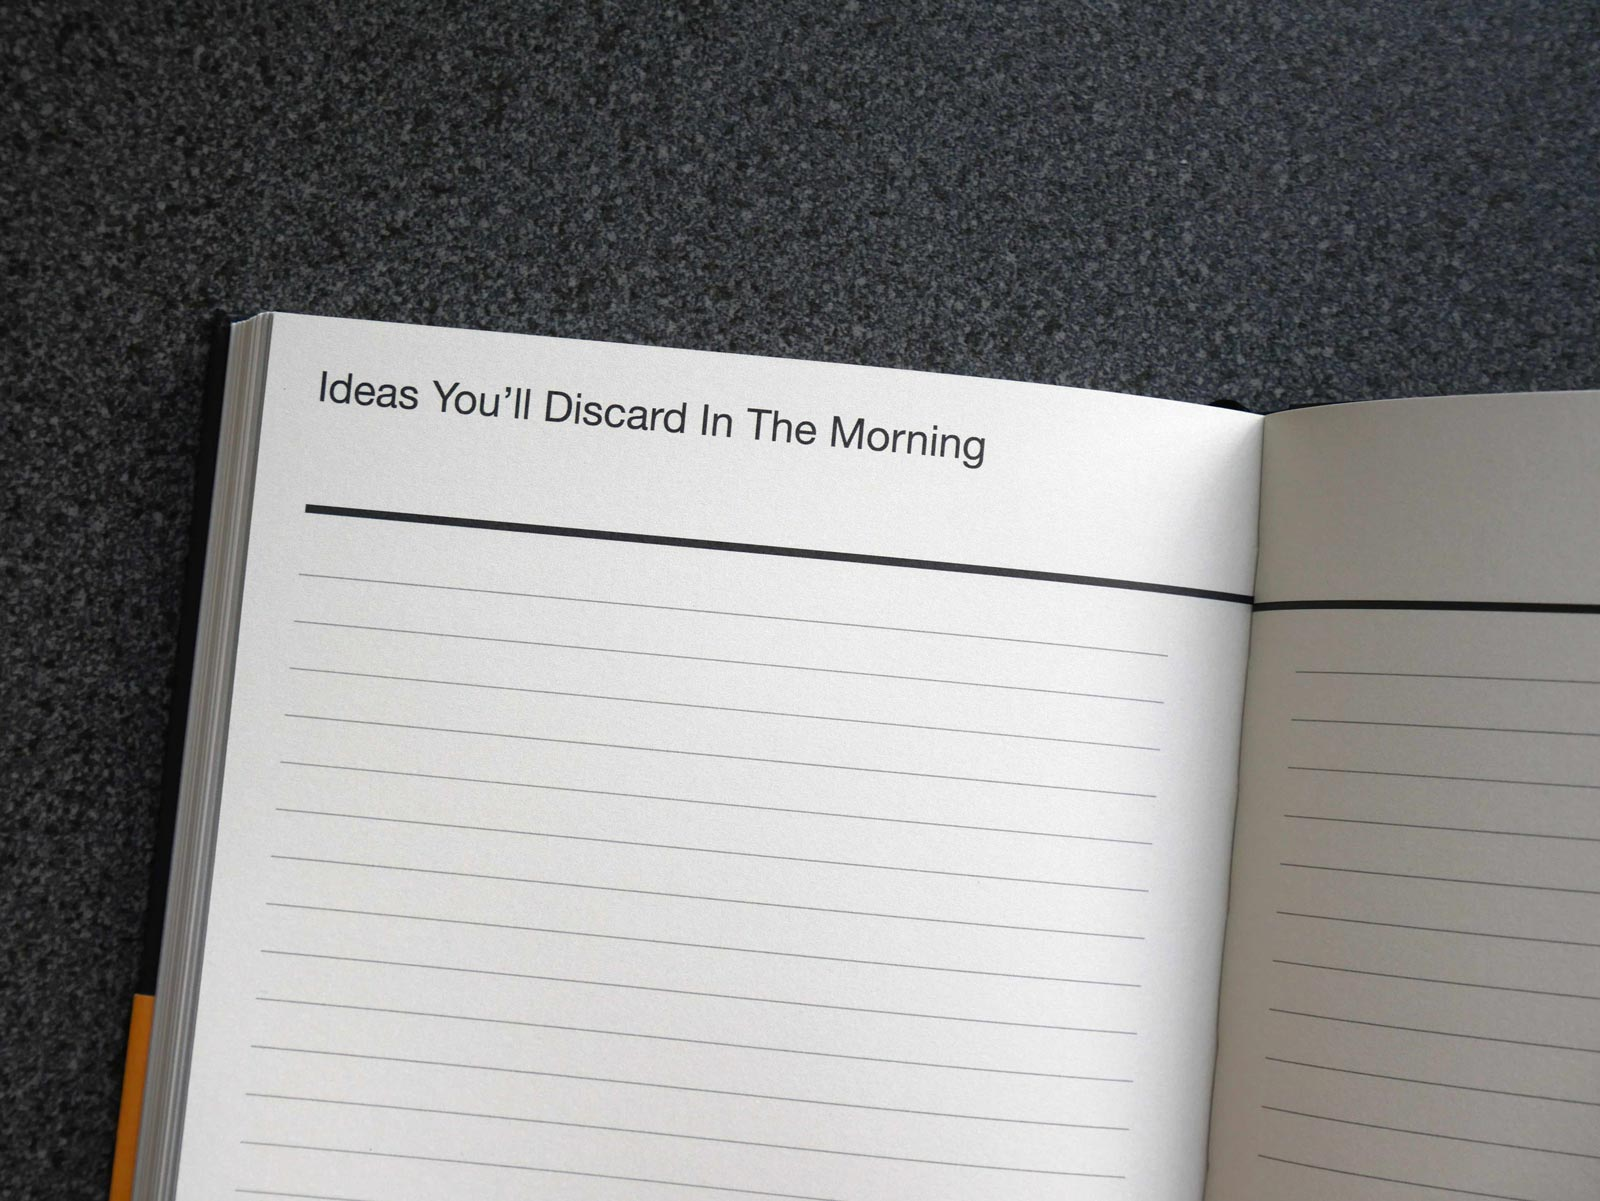 Perpetual disappointments diary by Nick Asbury for A Curate's Egg